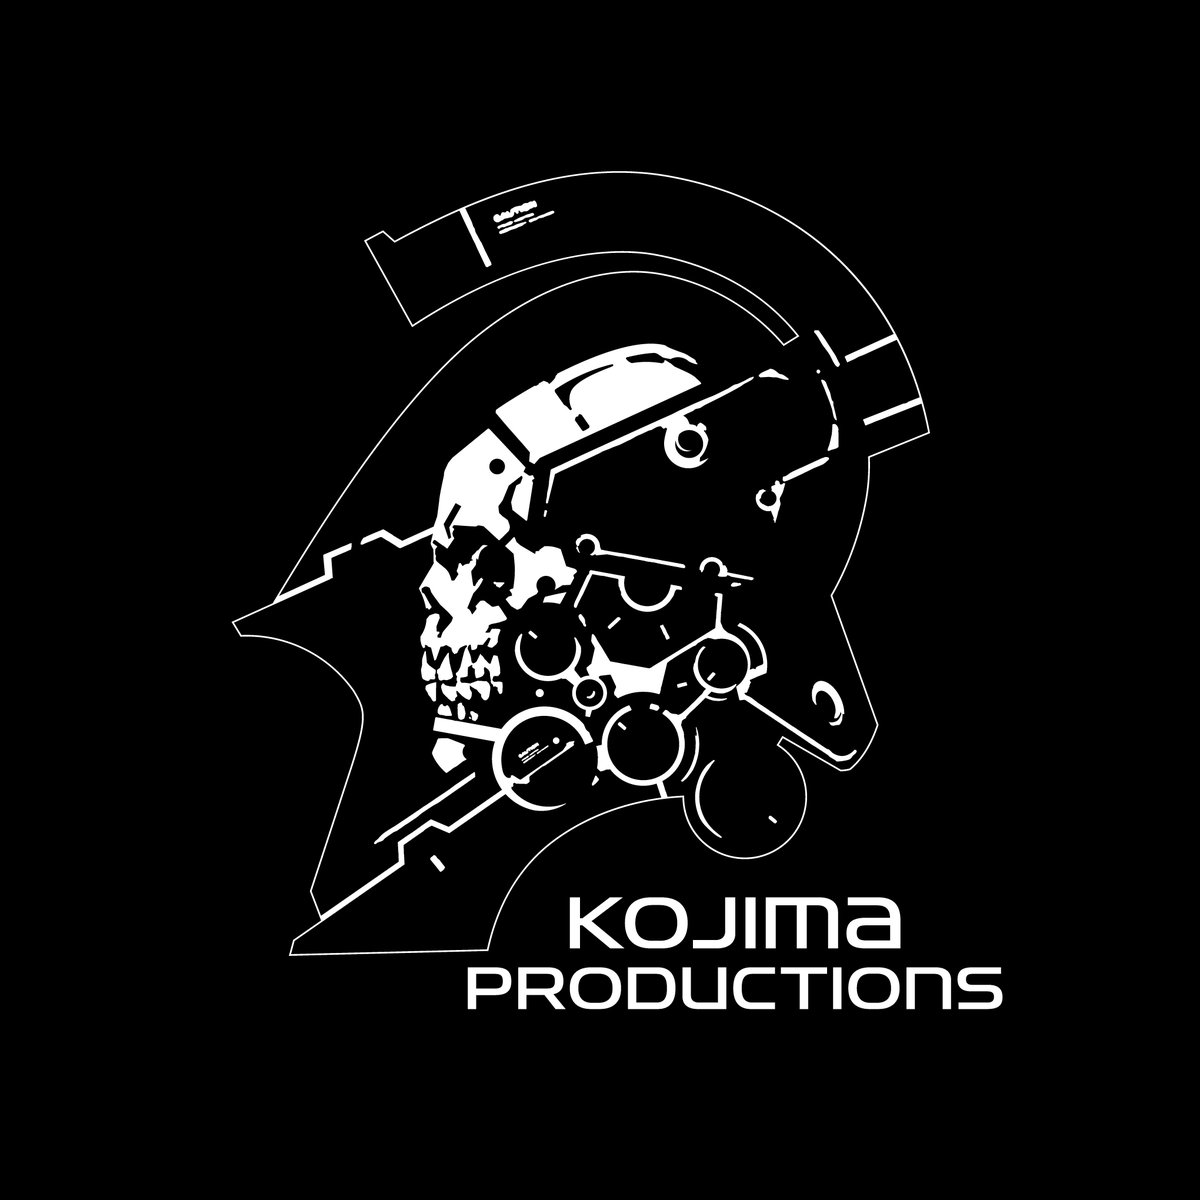 #DSStories 24 December 2016- Kojima Productions' offices didn't extend beyond 8㎡. Lead concept artist Yoji Shinkawa scanned his hand-drawn art to a computer with his iPhone. That art would become the Kojima Productions logo, Ludens, and symbolized how the studio aimed for space.